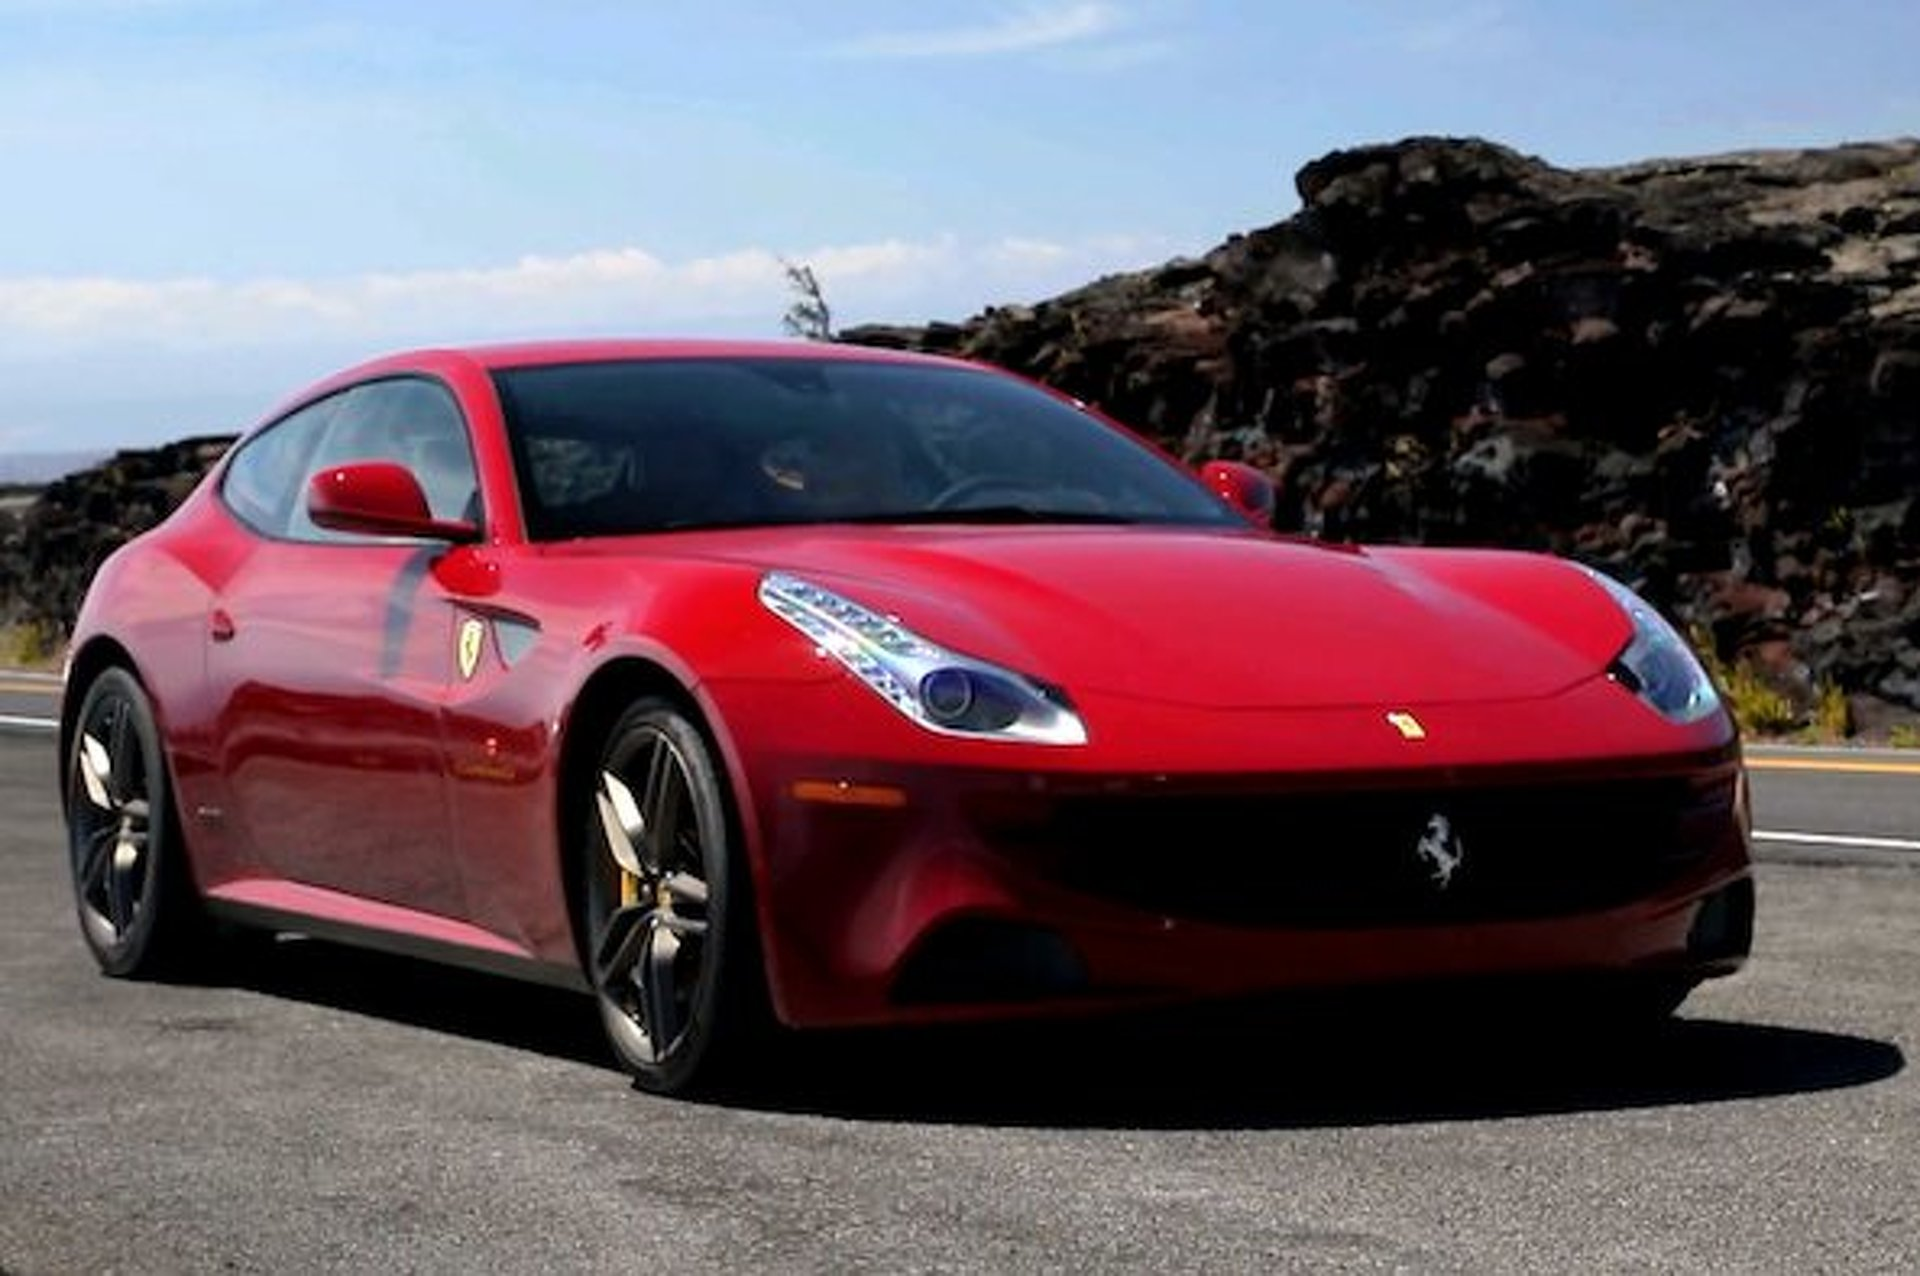 Video: Motor Trend Takes a Ferrari FF to Hawaii Because Why Not